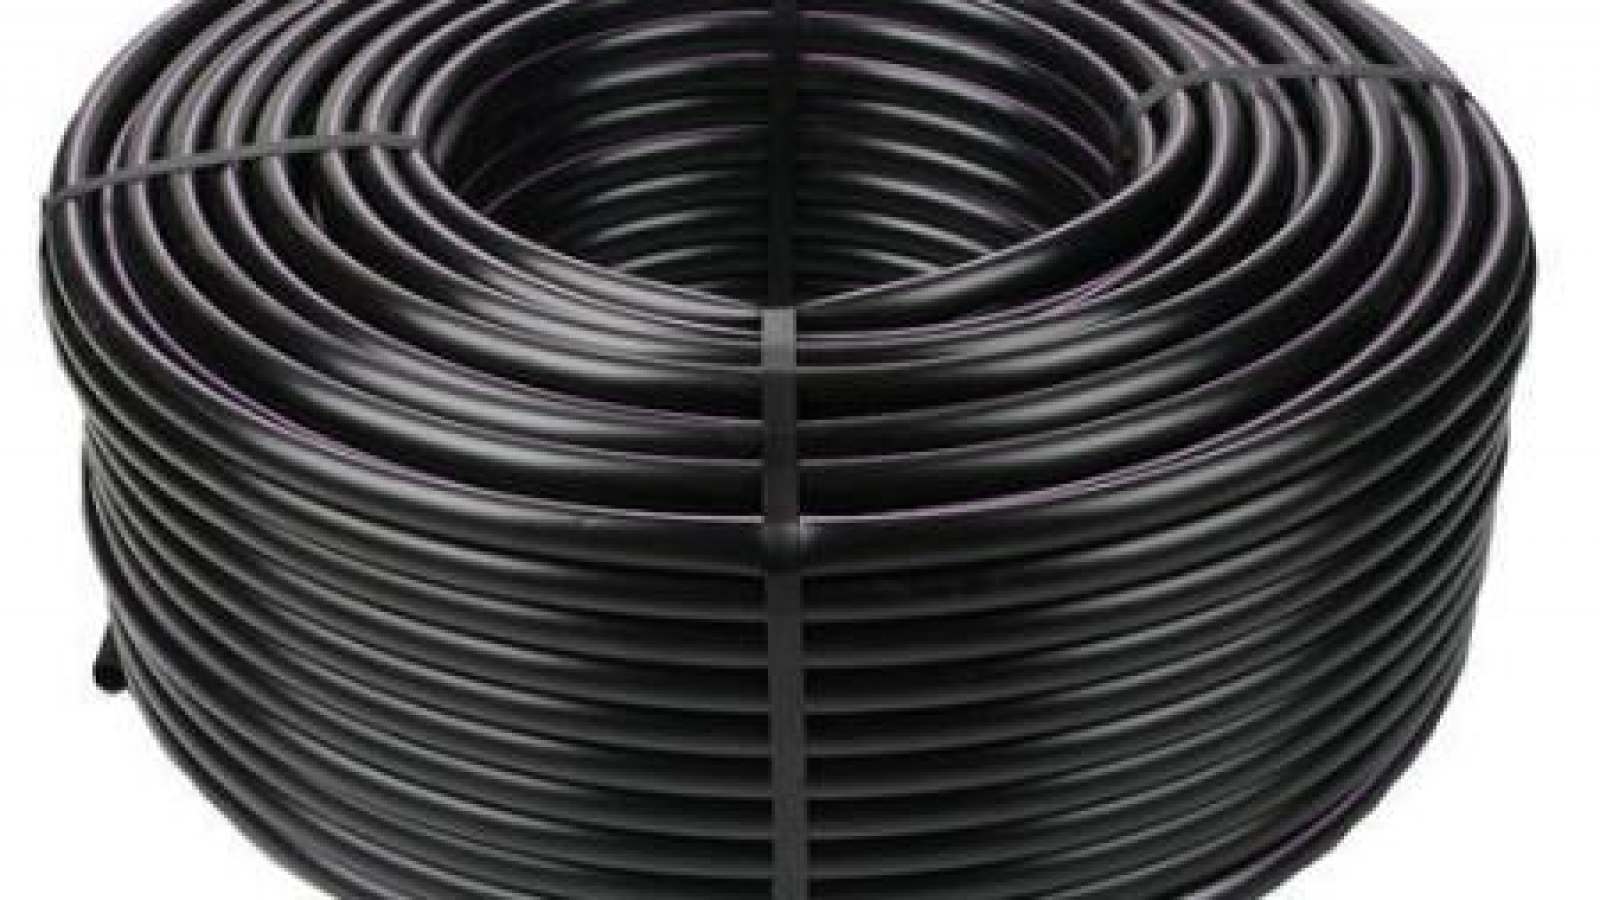 Agricultural irrigation hose are widely traded in the market today due to the reduction of groundwater levels and the promotion of water conservation policies